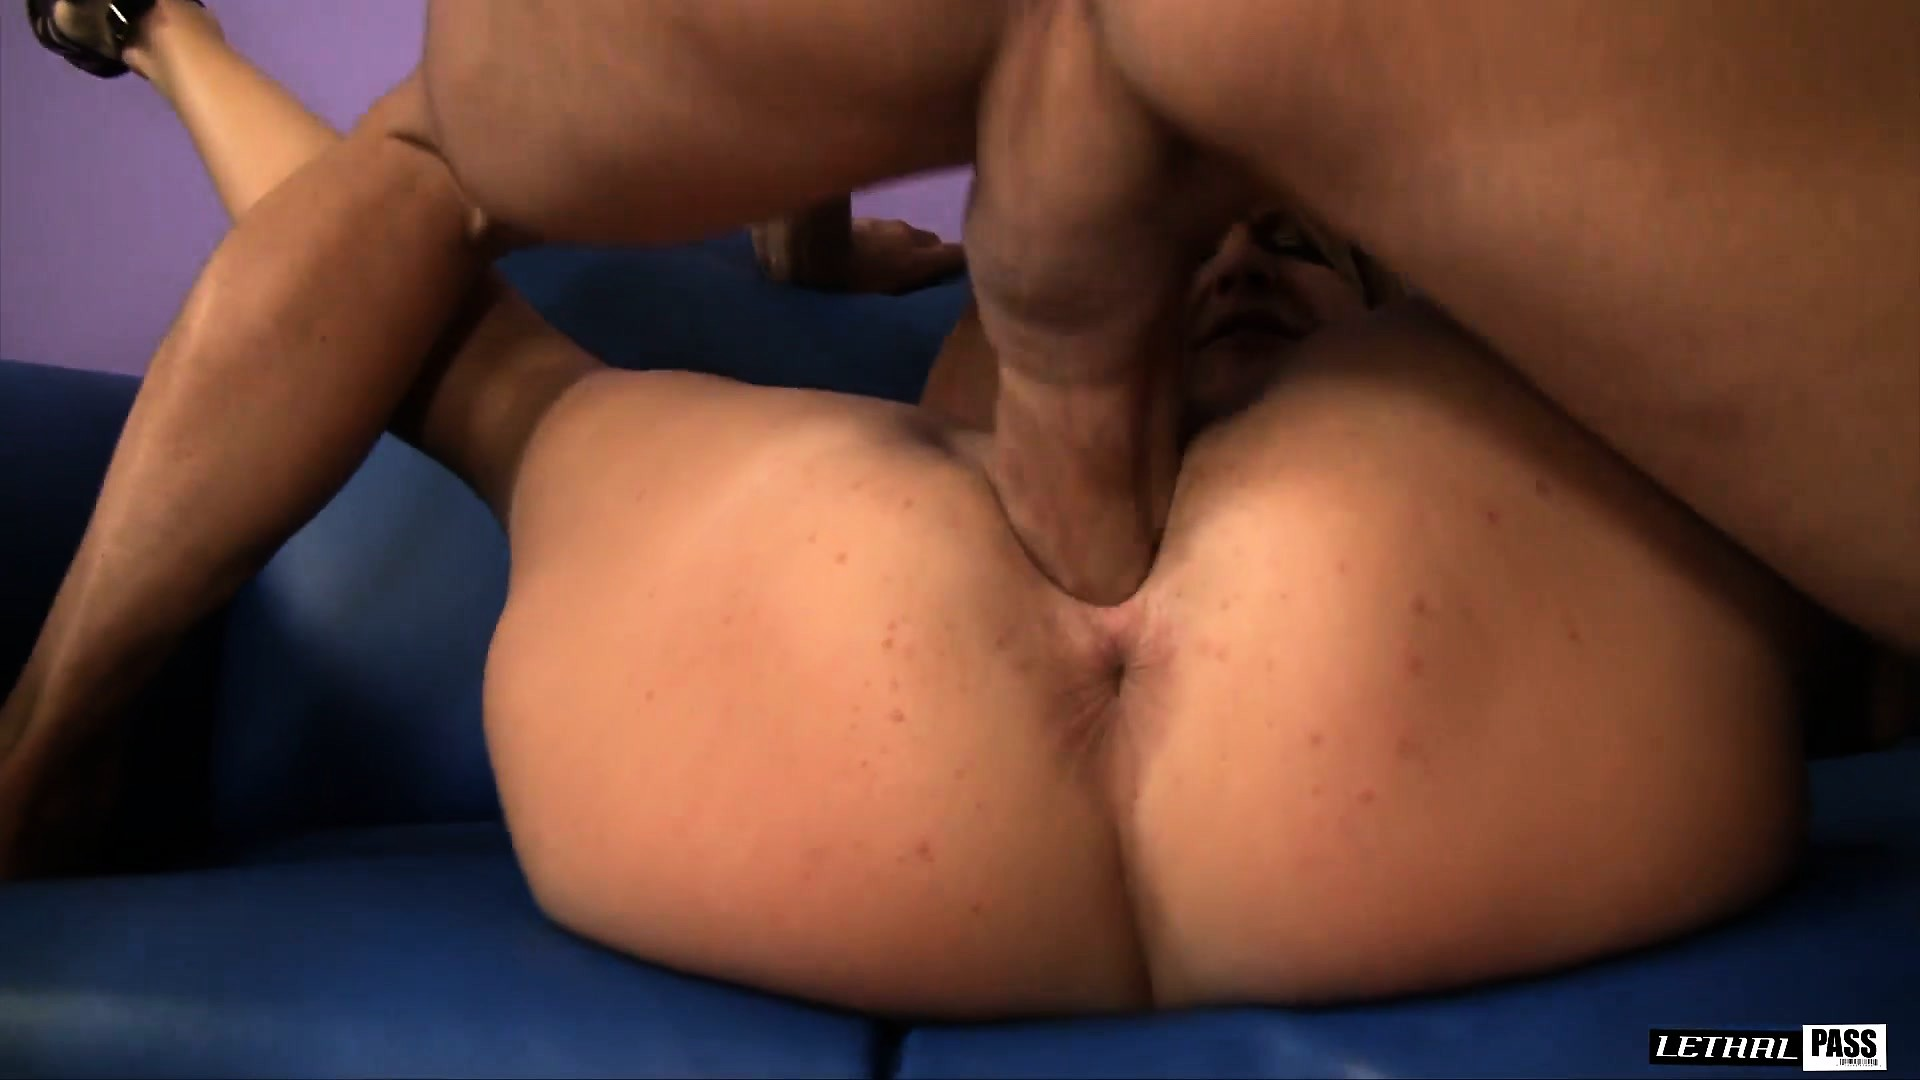 Free Mobile Porn & Sex Videos & Sex Movies - Nella Jay And Robbye Bentley  Are All Over His Throbbing Boner - 408026 - ProPorn.com